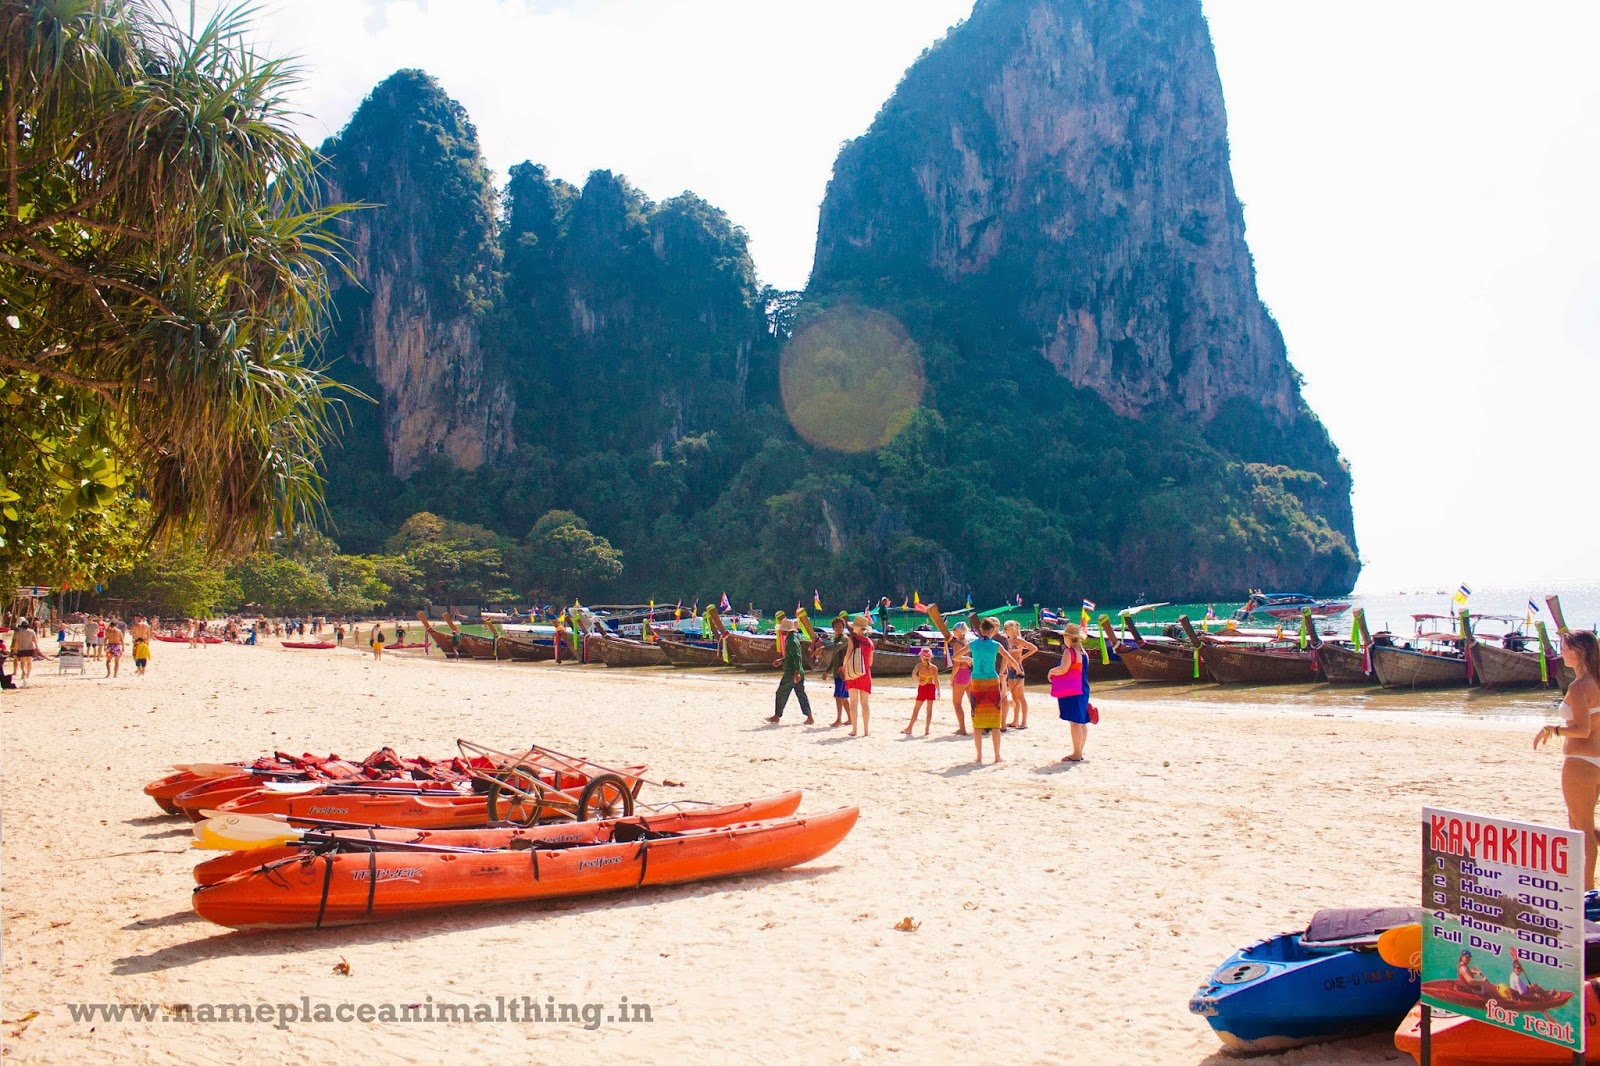 West Railay Beach (landing point for speedboats)